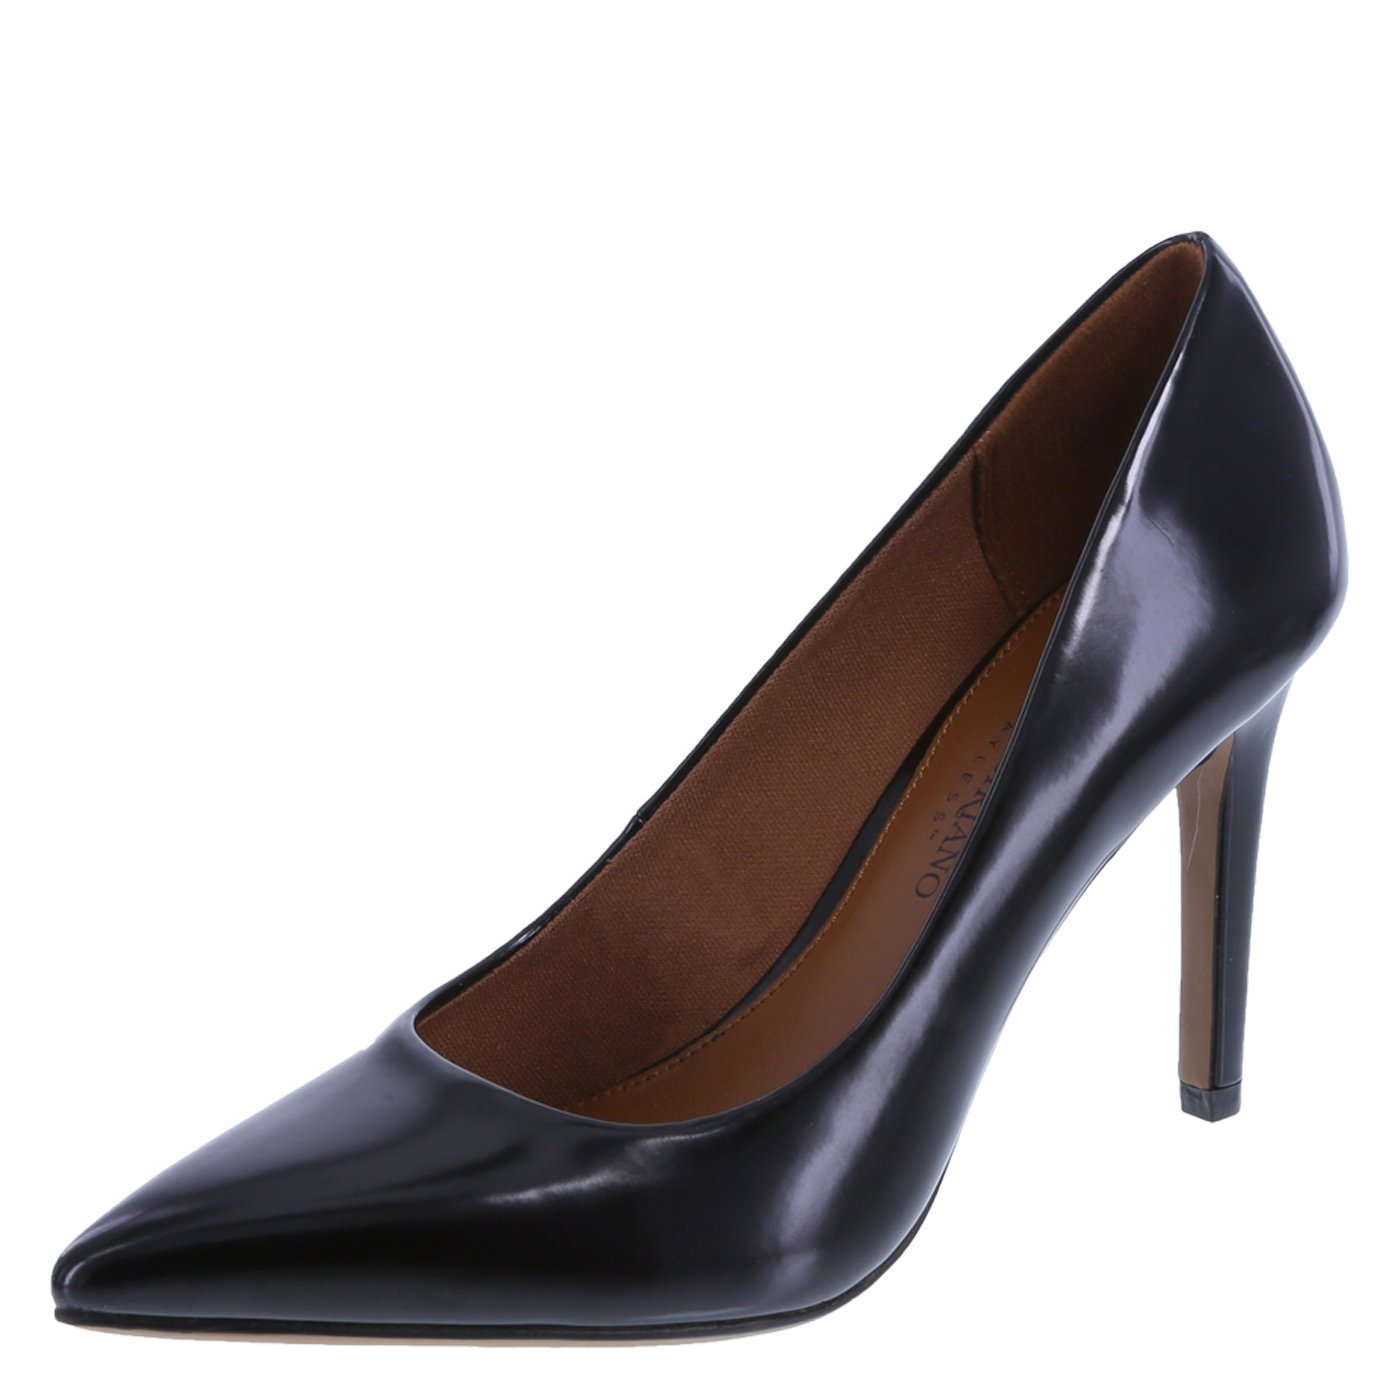 Christian Siriano for Payless Women's Smooth Black Women's Habit Pointed Pump 8.5 Regular